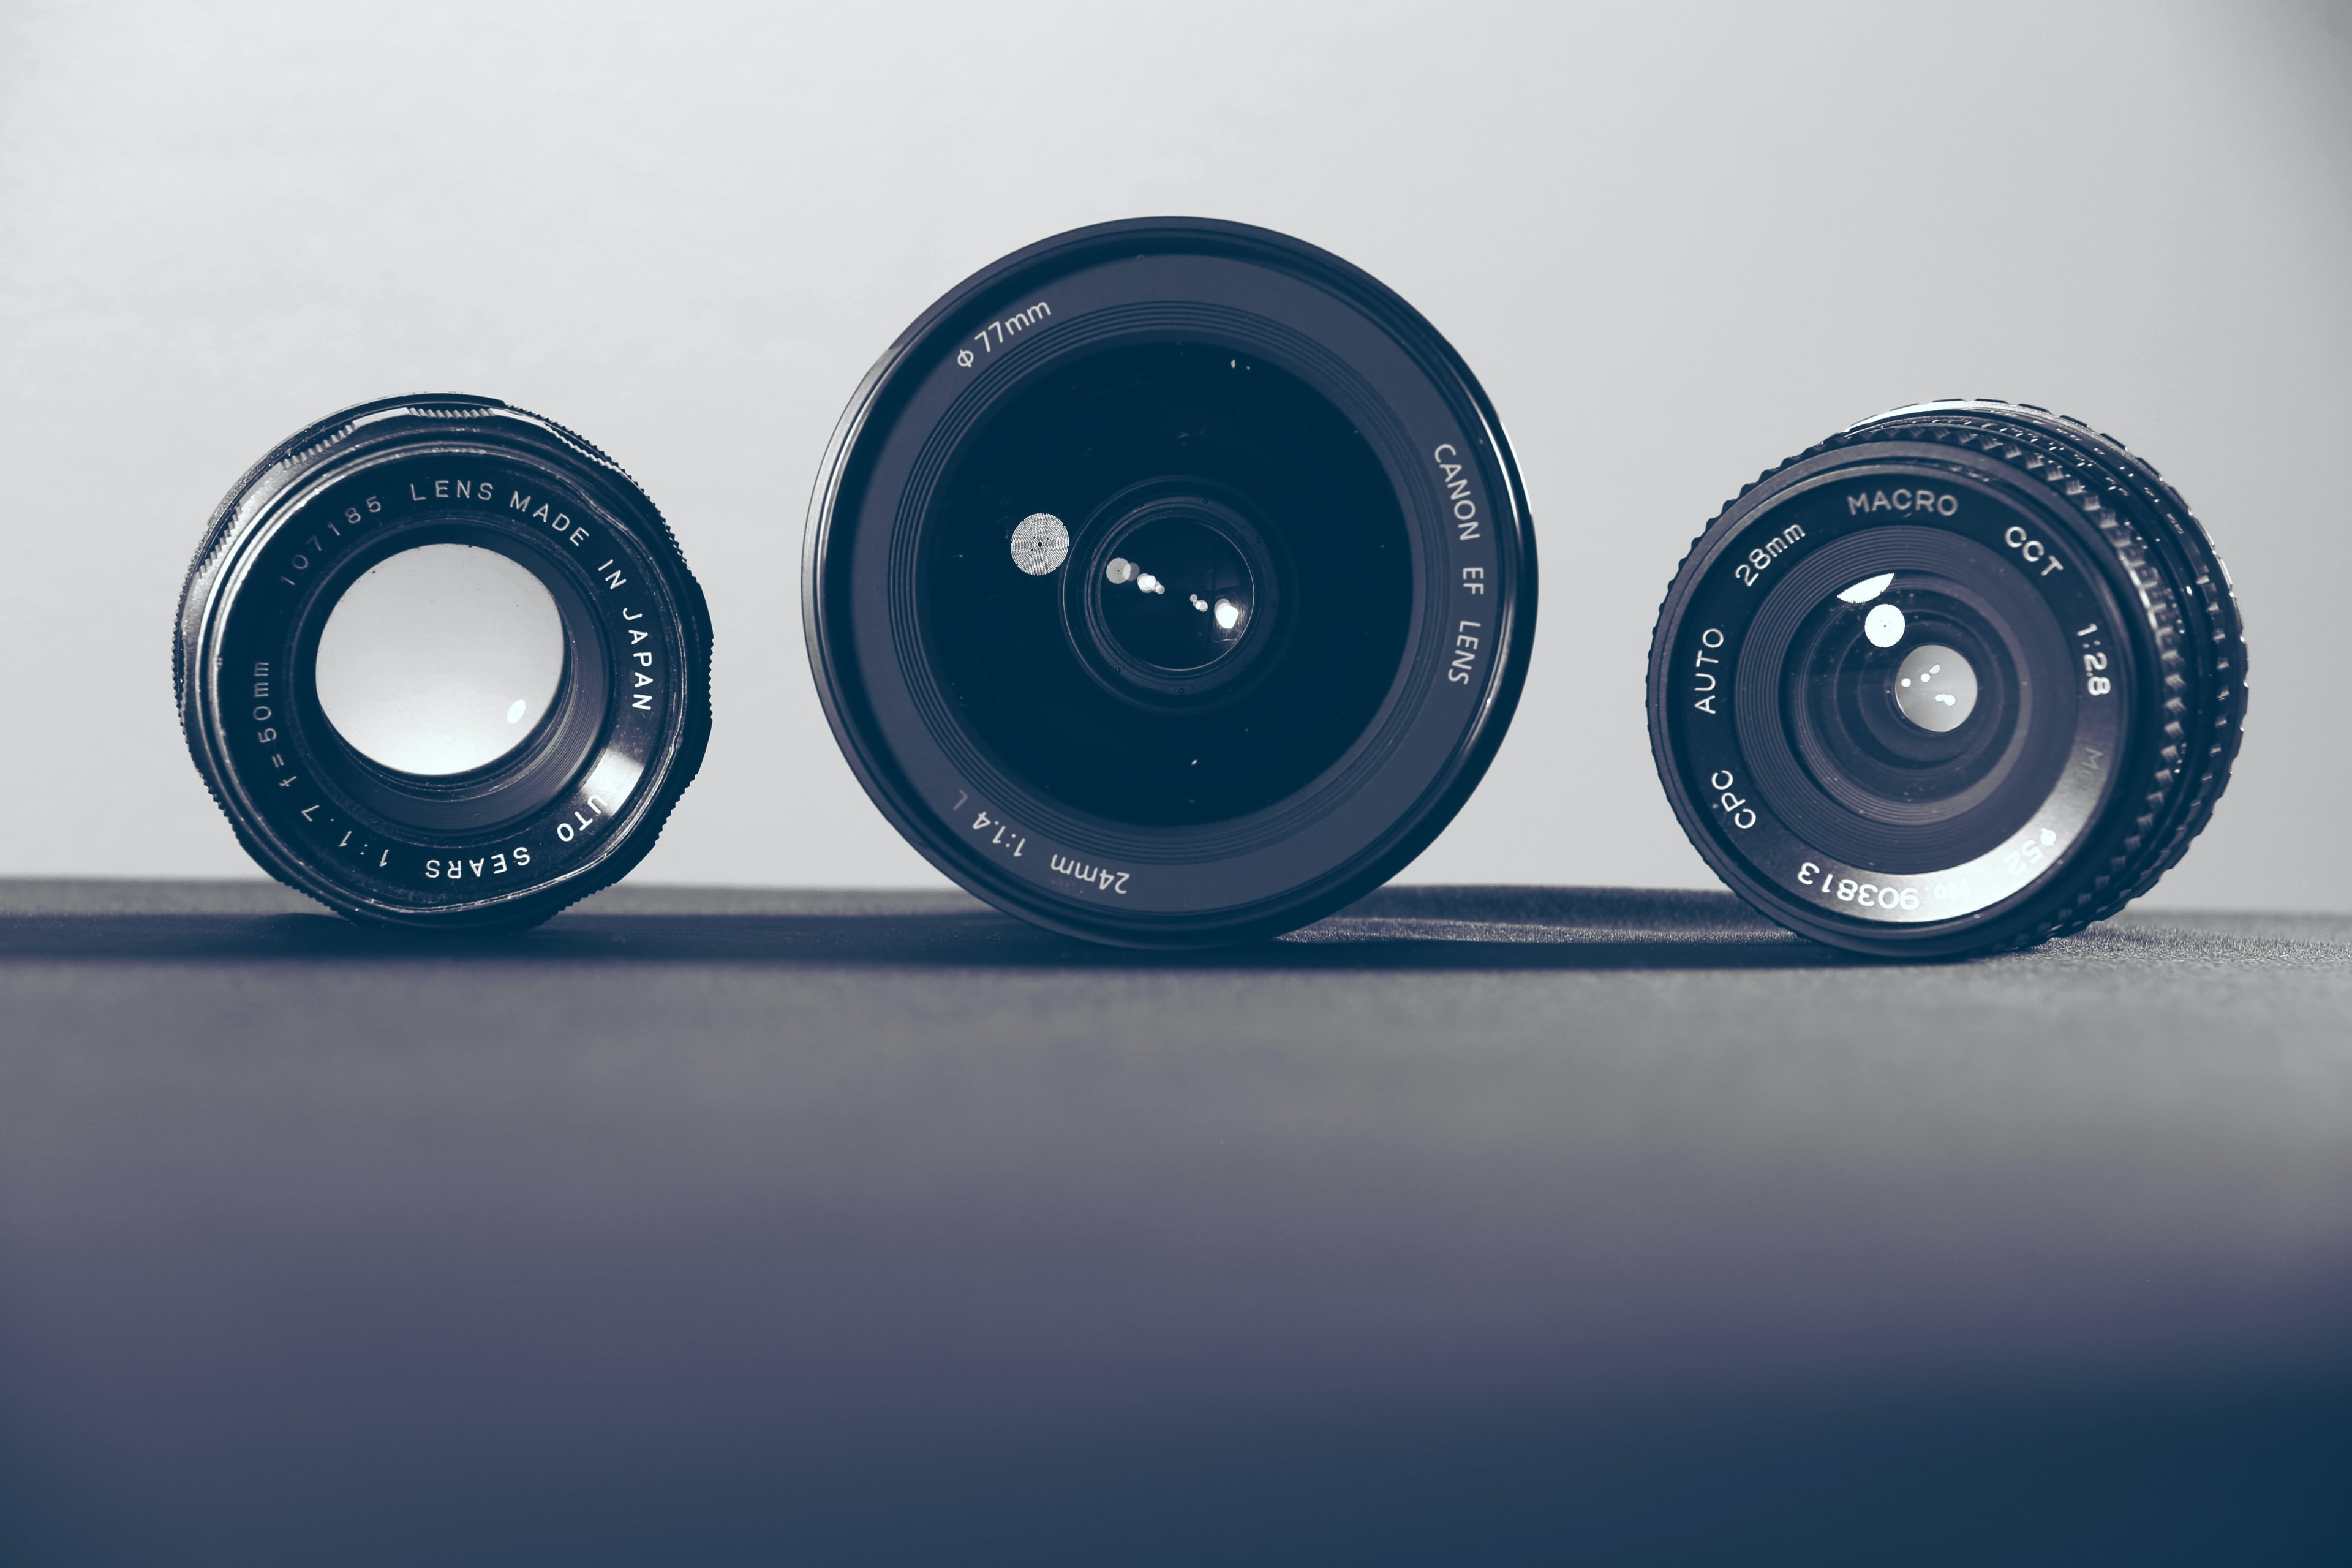 three black camera lenses on gray surface